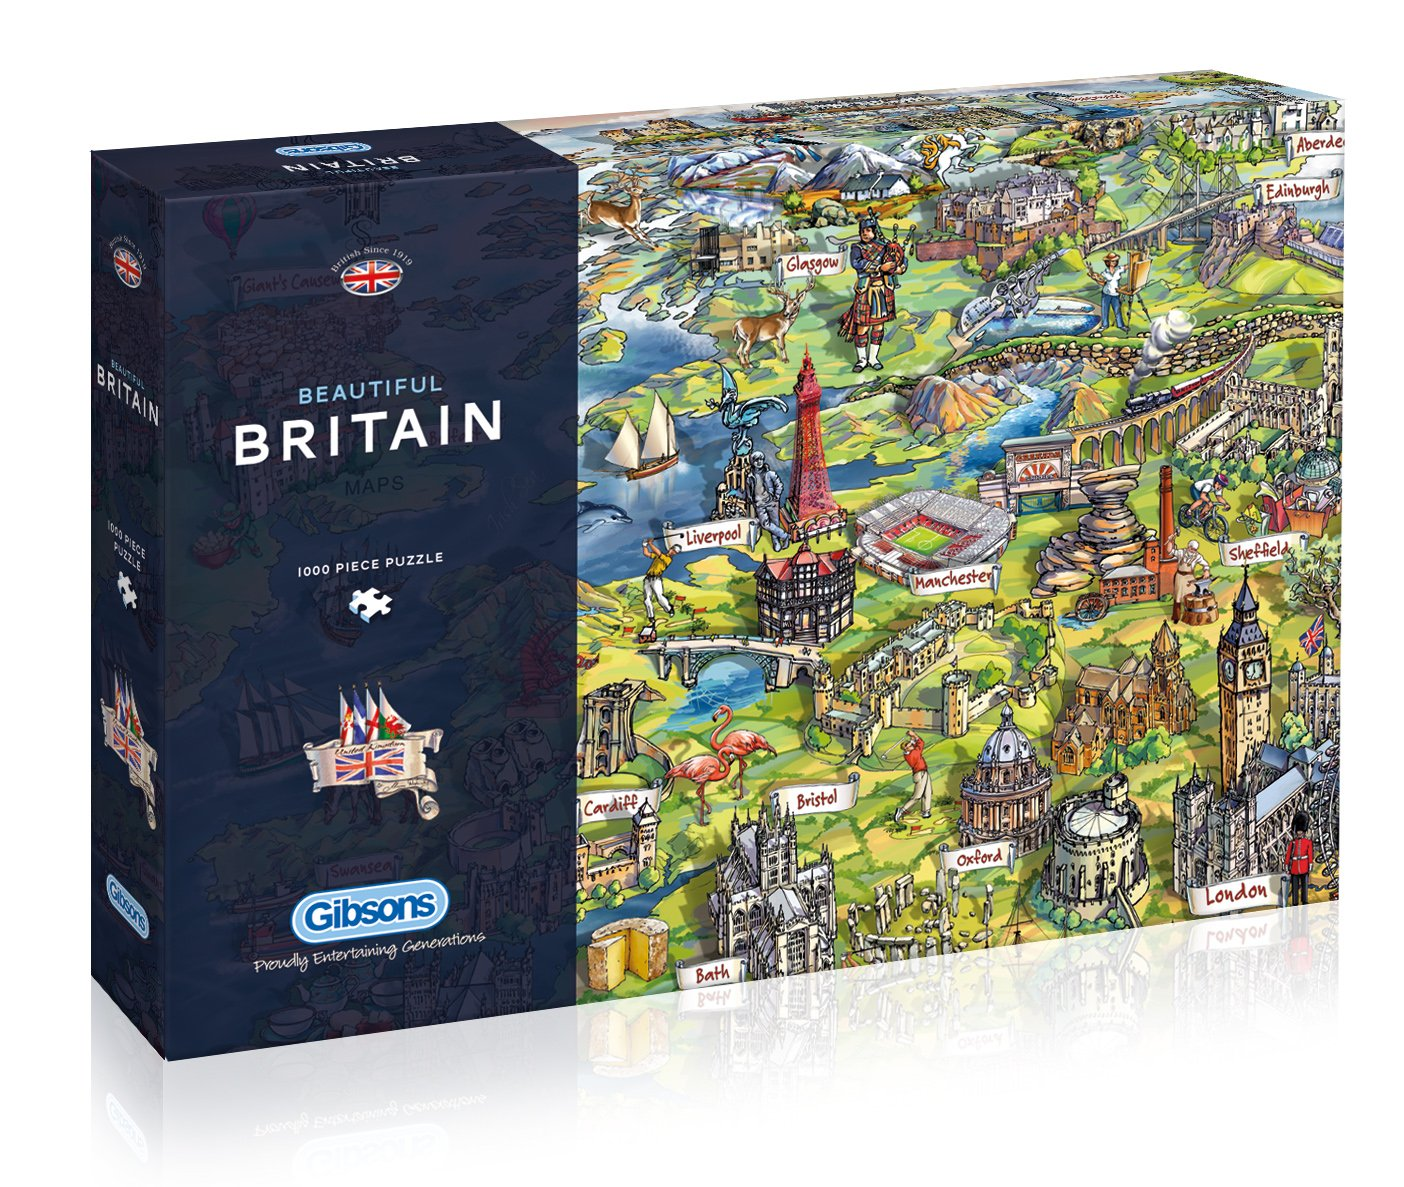 1000 piece Gibsons Beautiful Britain Jigsaw Puzzle